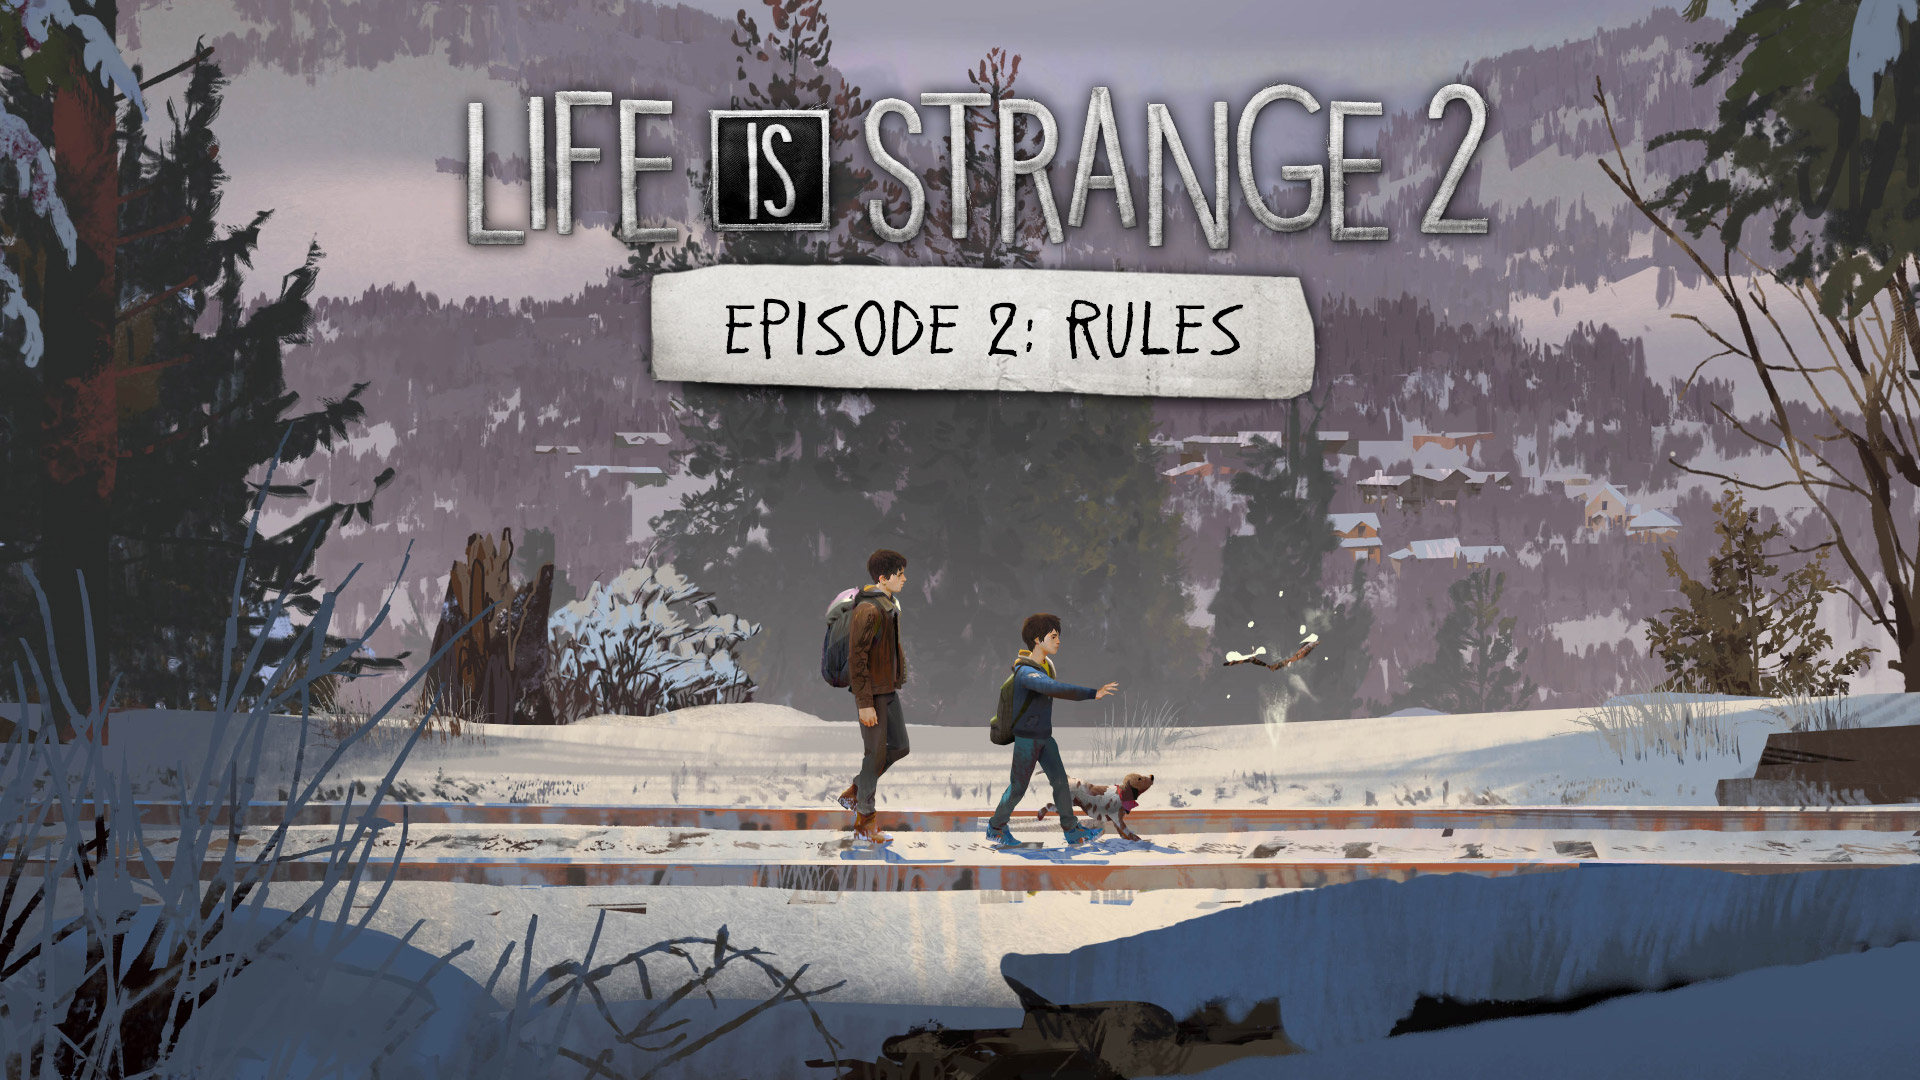 Free Life is Strange 2 Wallpaper in 1920x1080